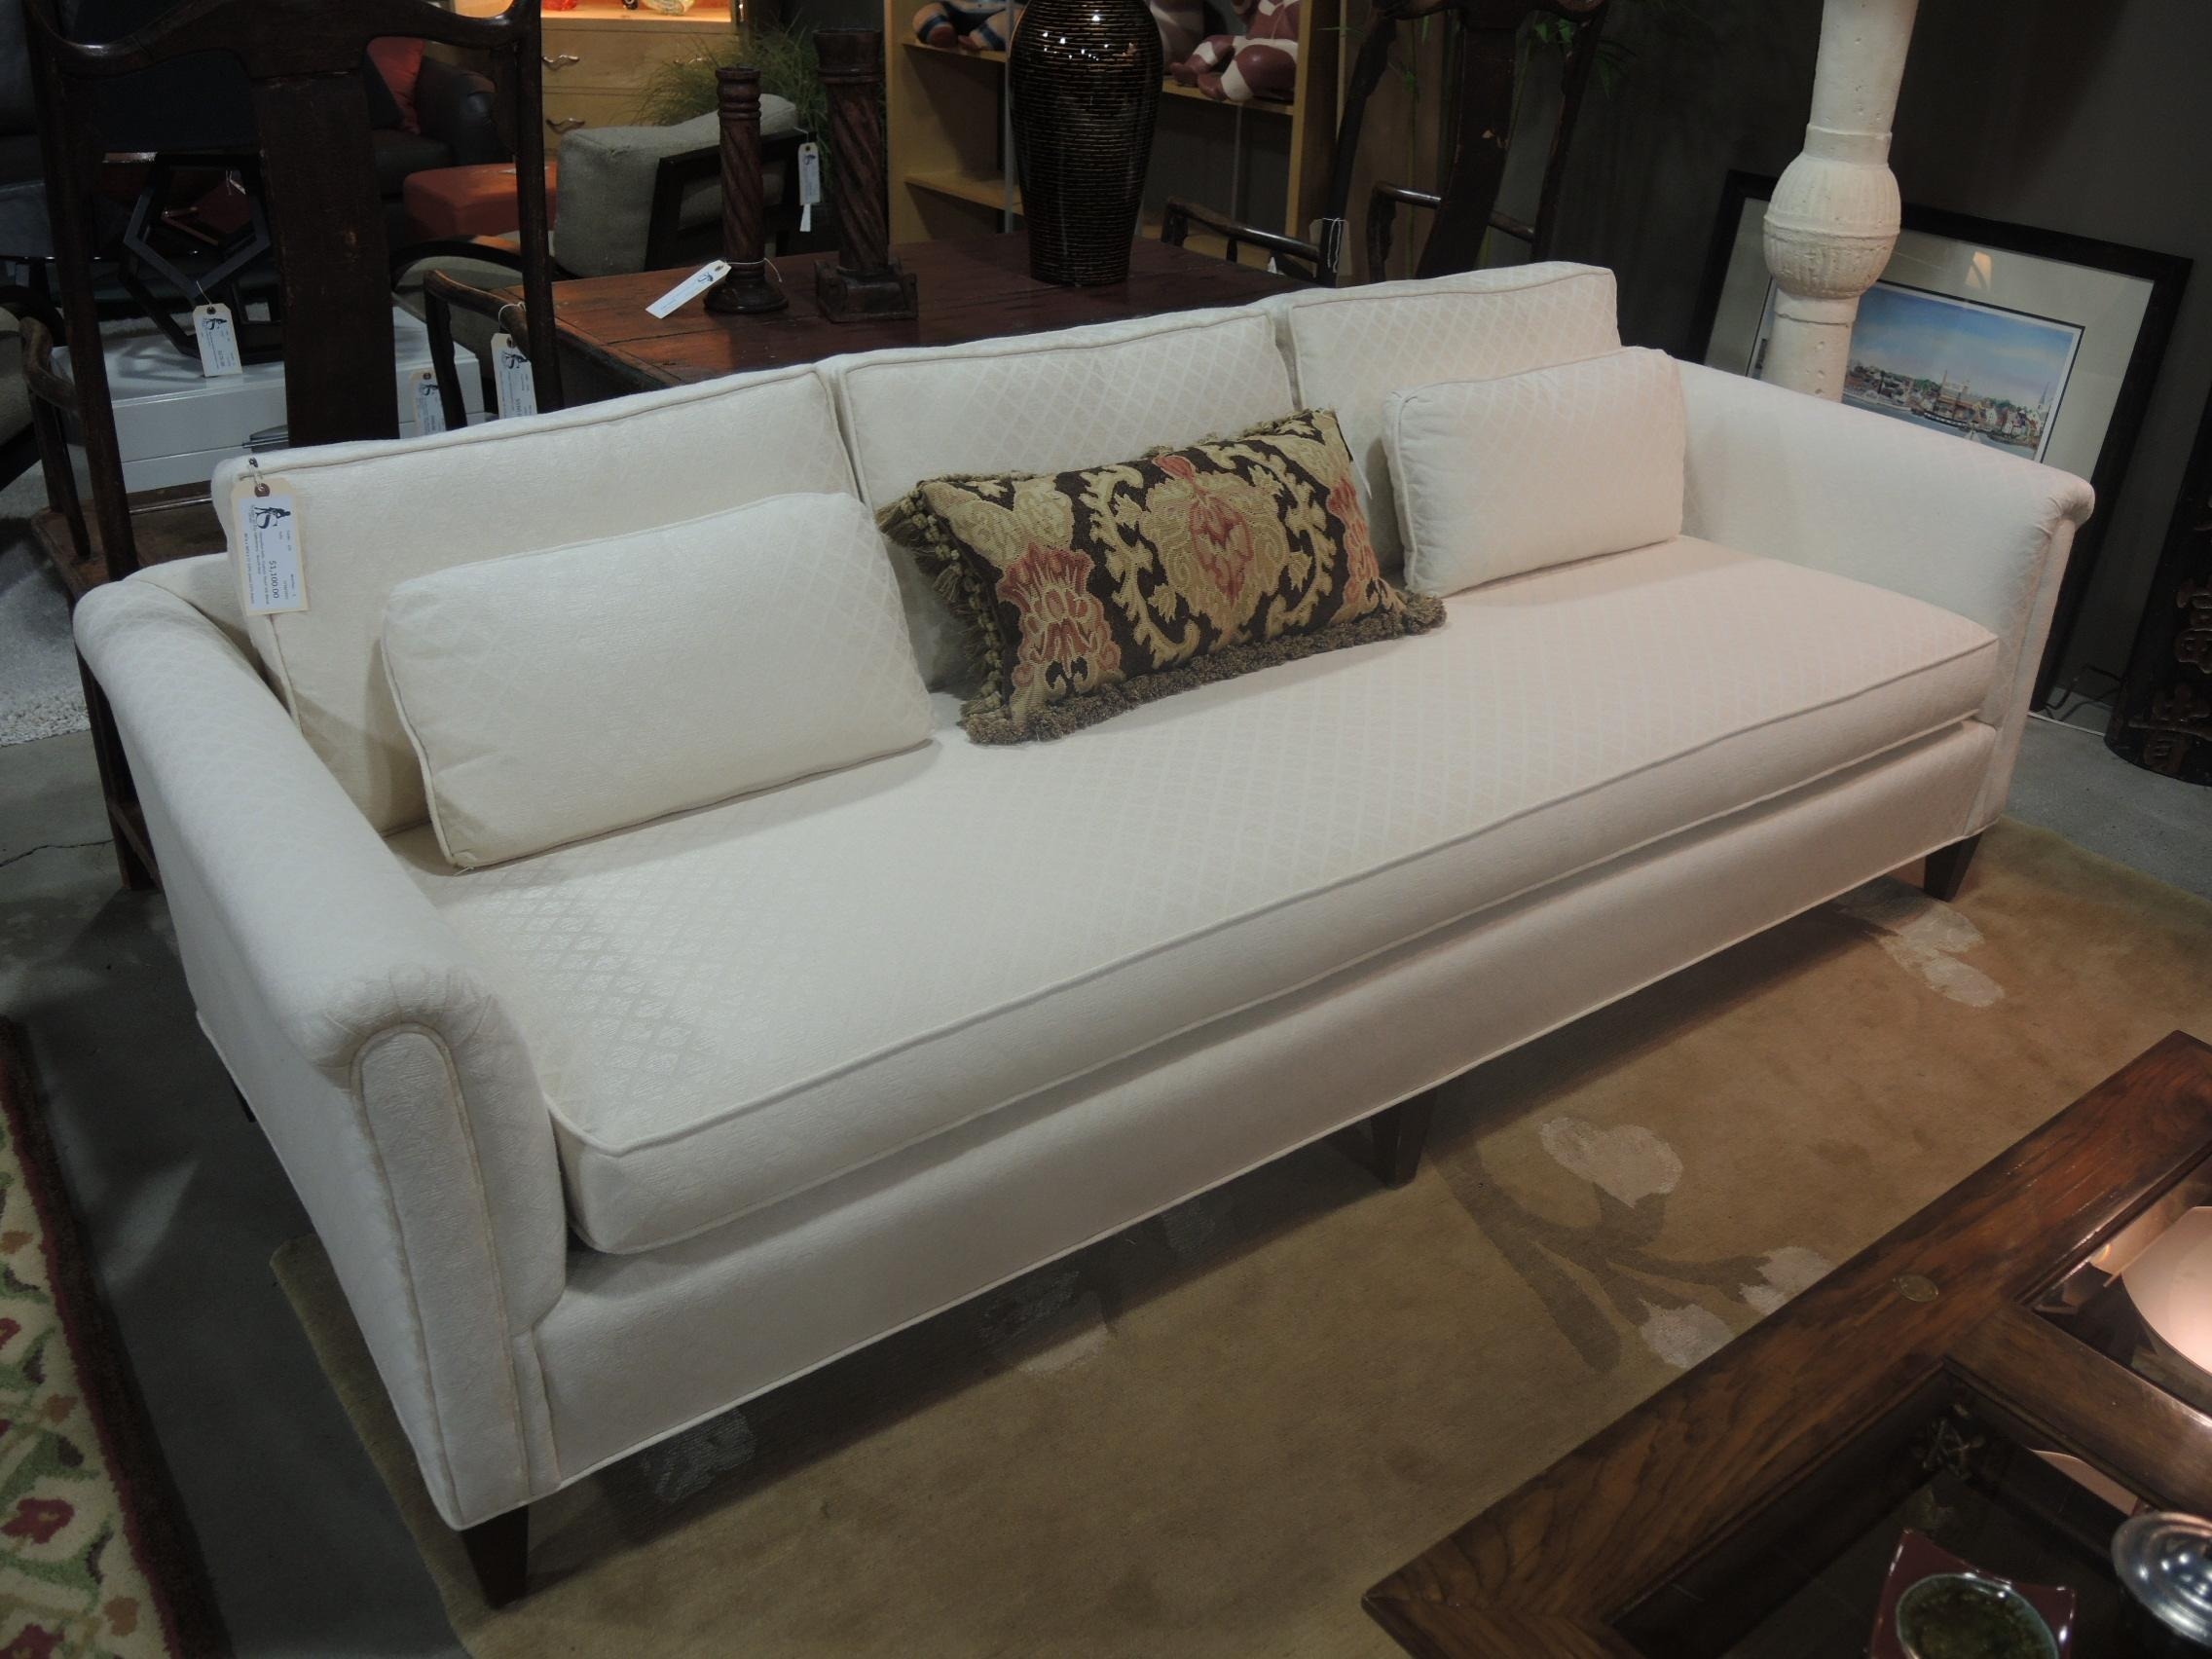 Single Cushion Sofa Couch | Cushions Decoration Intended For Bench Cushion Sofas (Image 17 of 20)